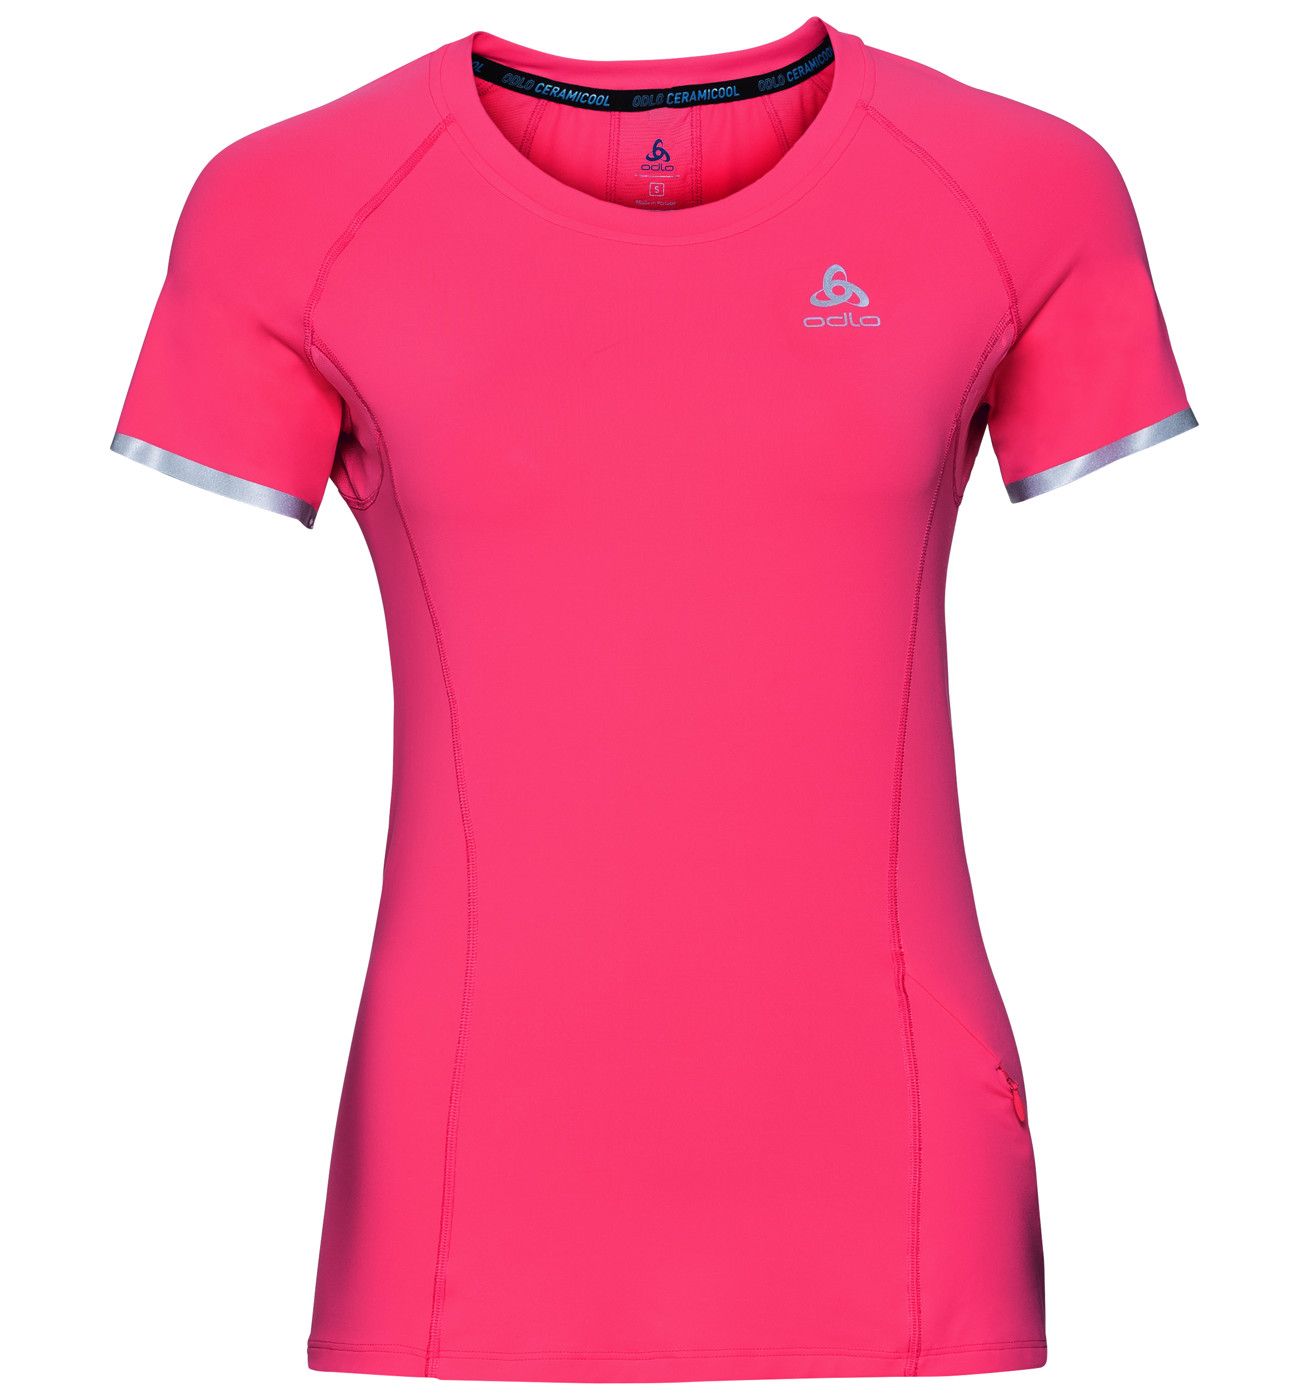 ODLO BL TOP Crew neck s/s ZEROWEIGH - Damen